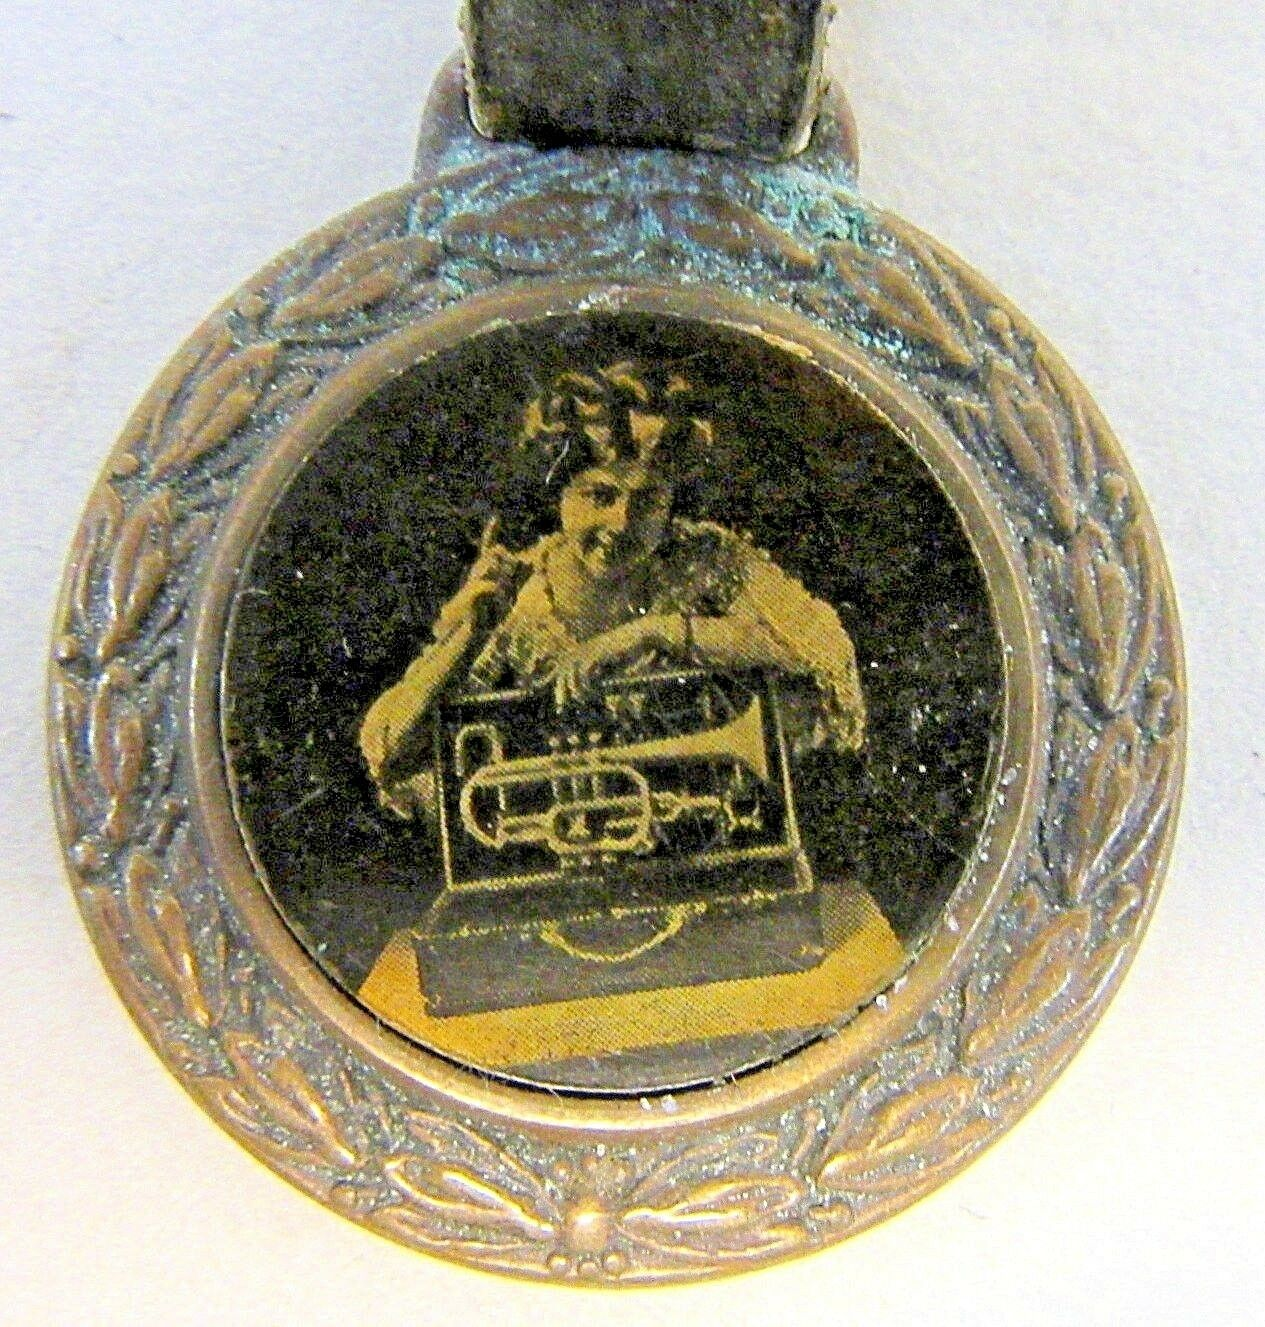 C.1900 H. N. Weiß KING BOOSTER CORNET Cleveland OH celluloid watch fob w  strap